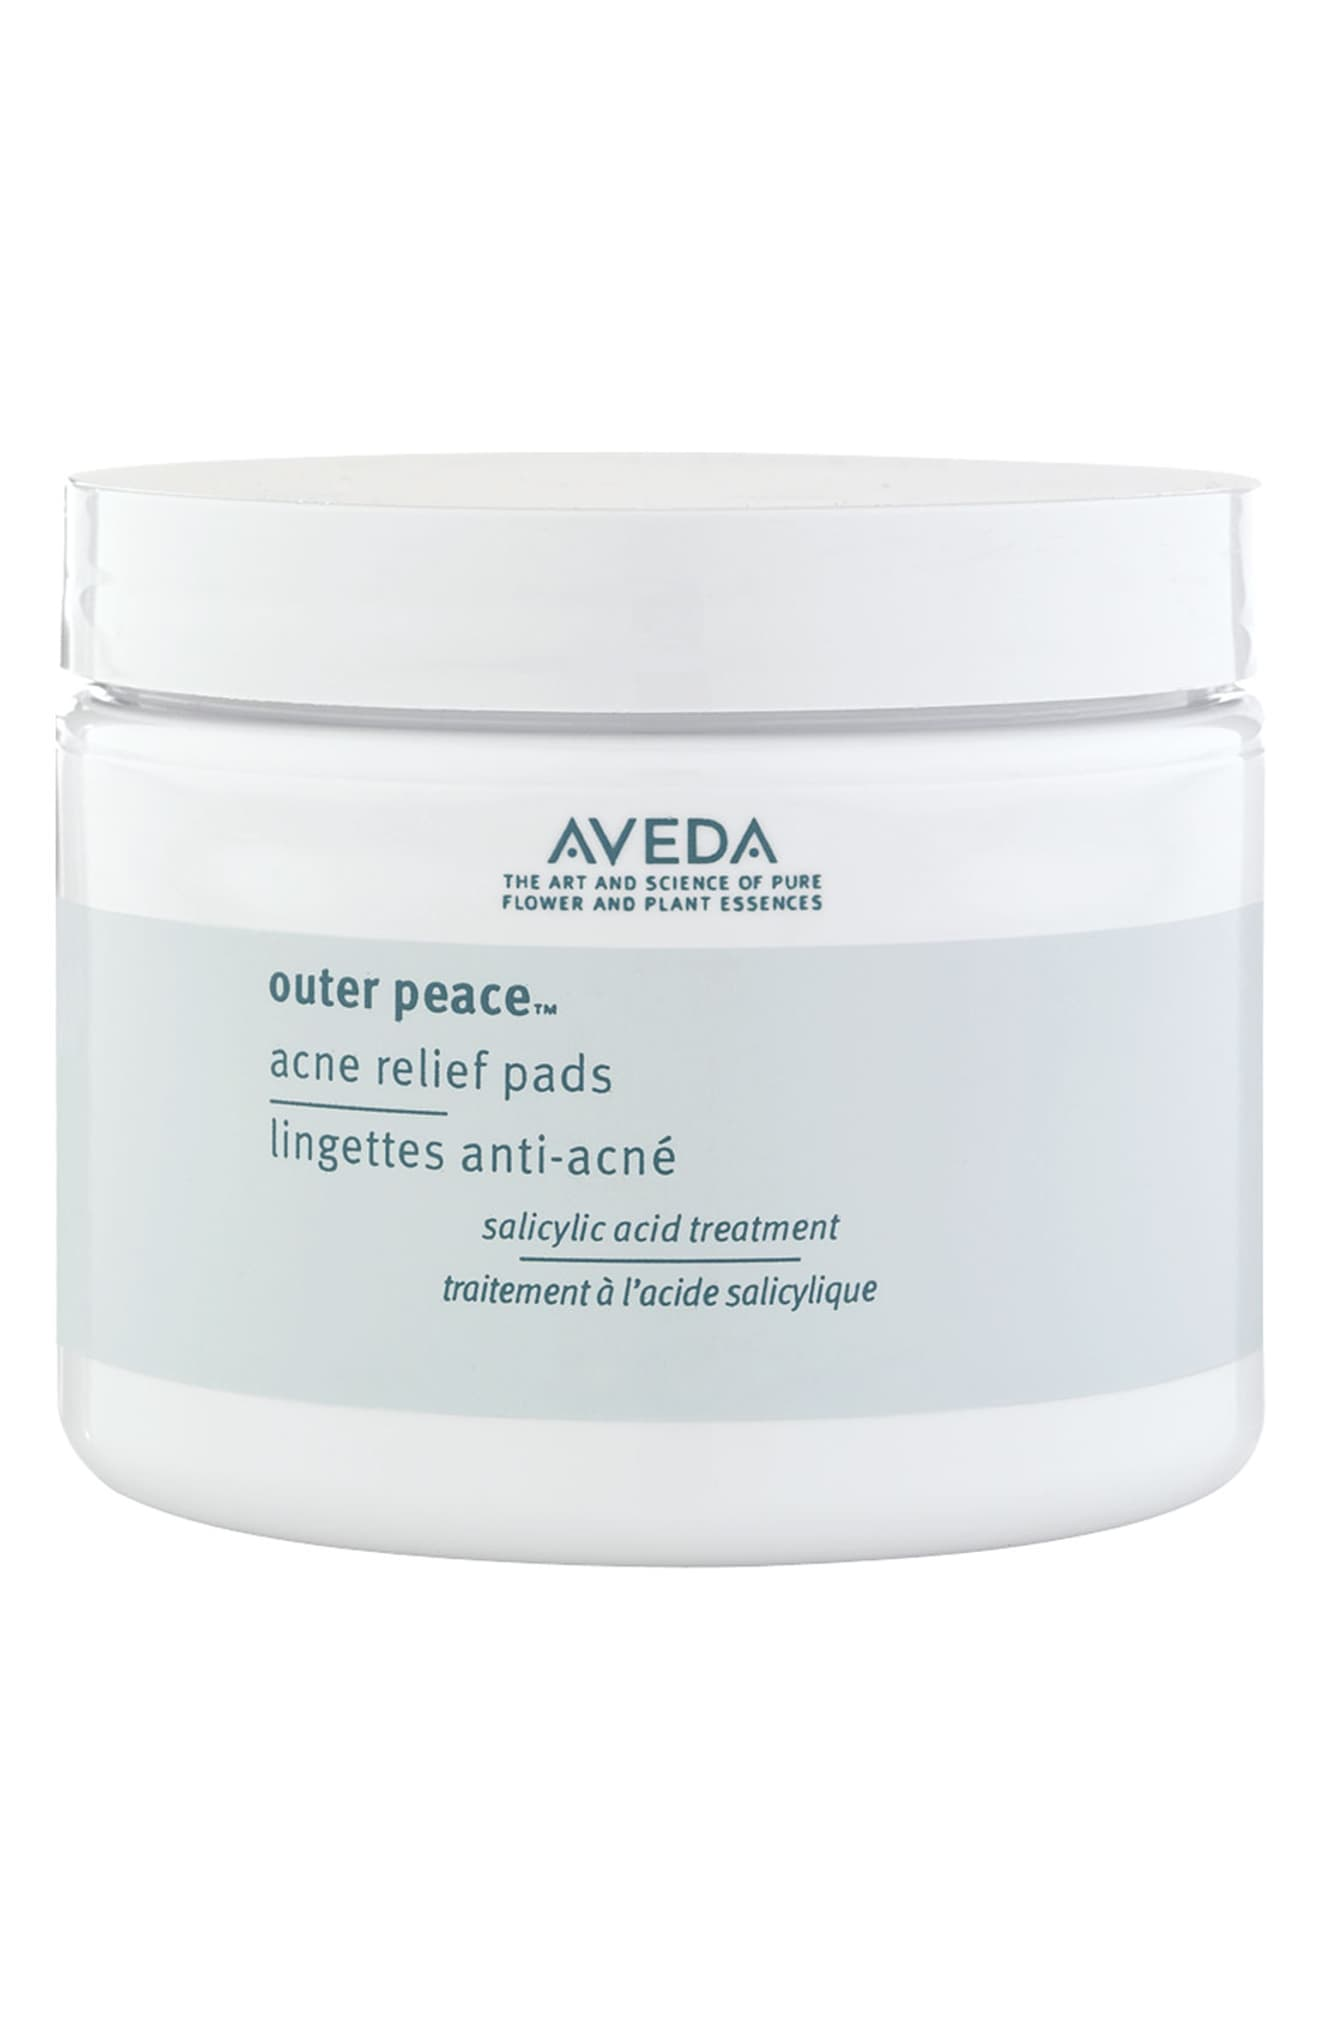 AVEDA-Outer Peace™ Acne Relief Pads